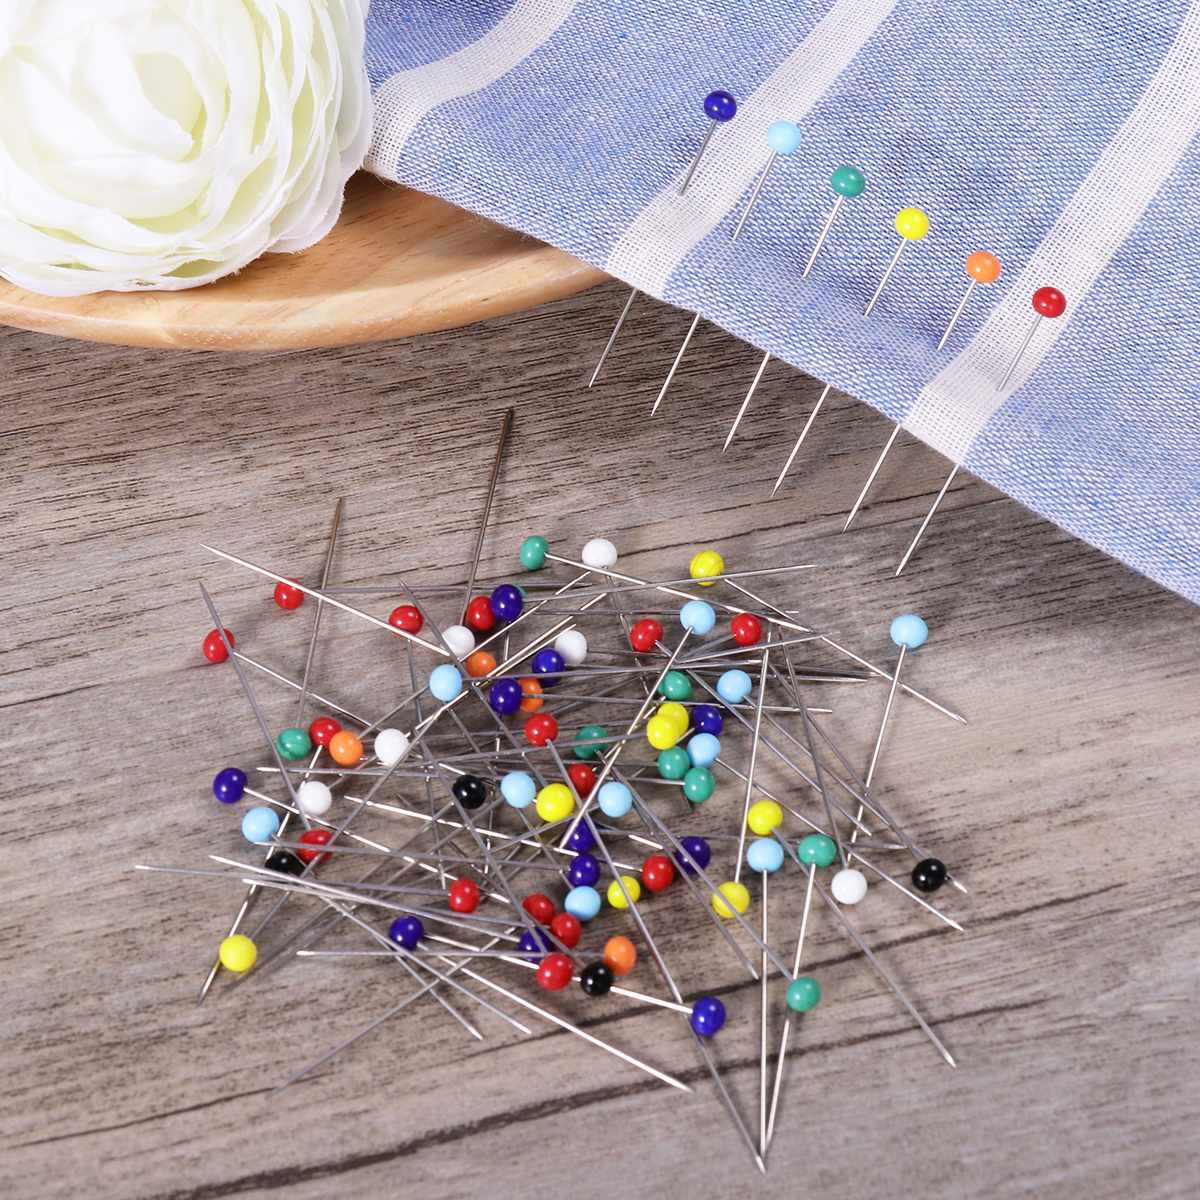 250pcs glass head pins multicolor sewing pin for diy sewing crafts  4mm head   34mm pin